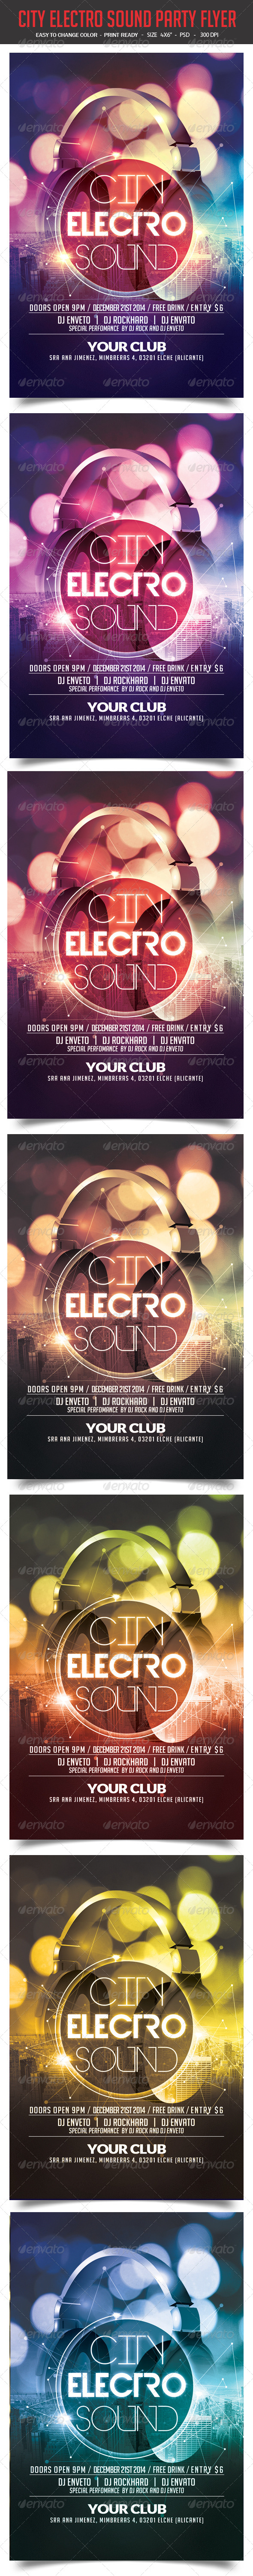 GraphicRiver City Electro Sound Party Flyer 8375636